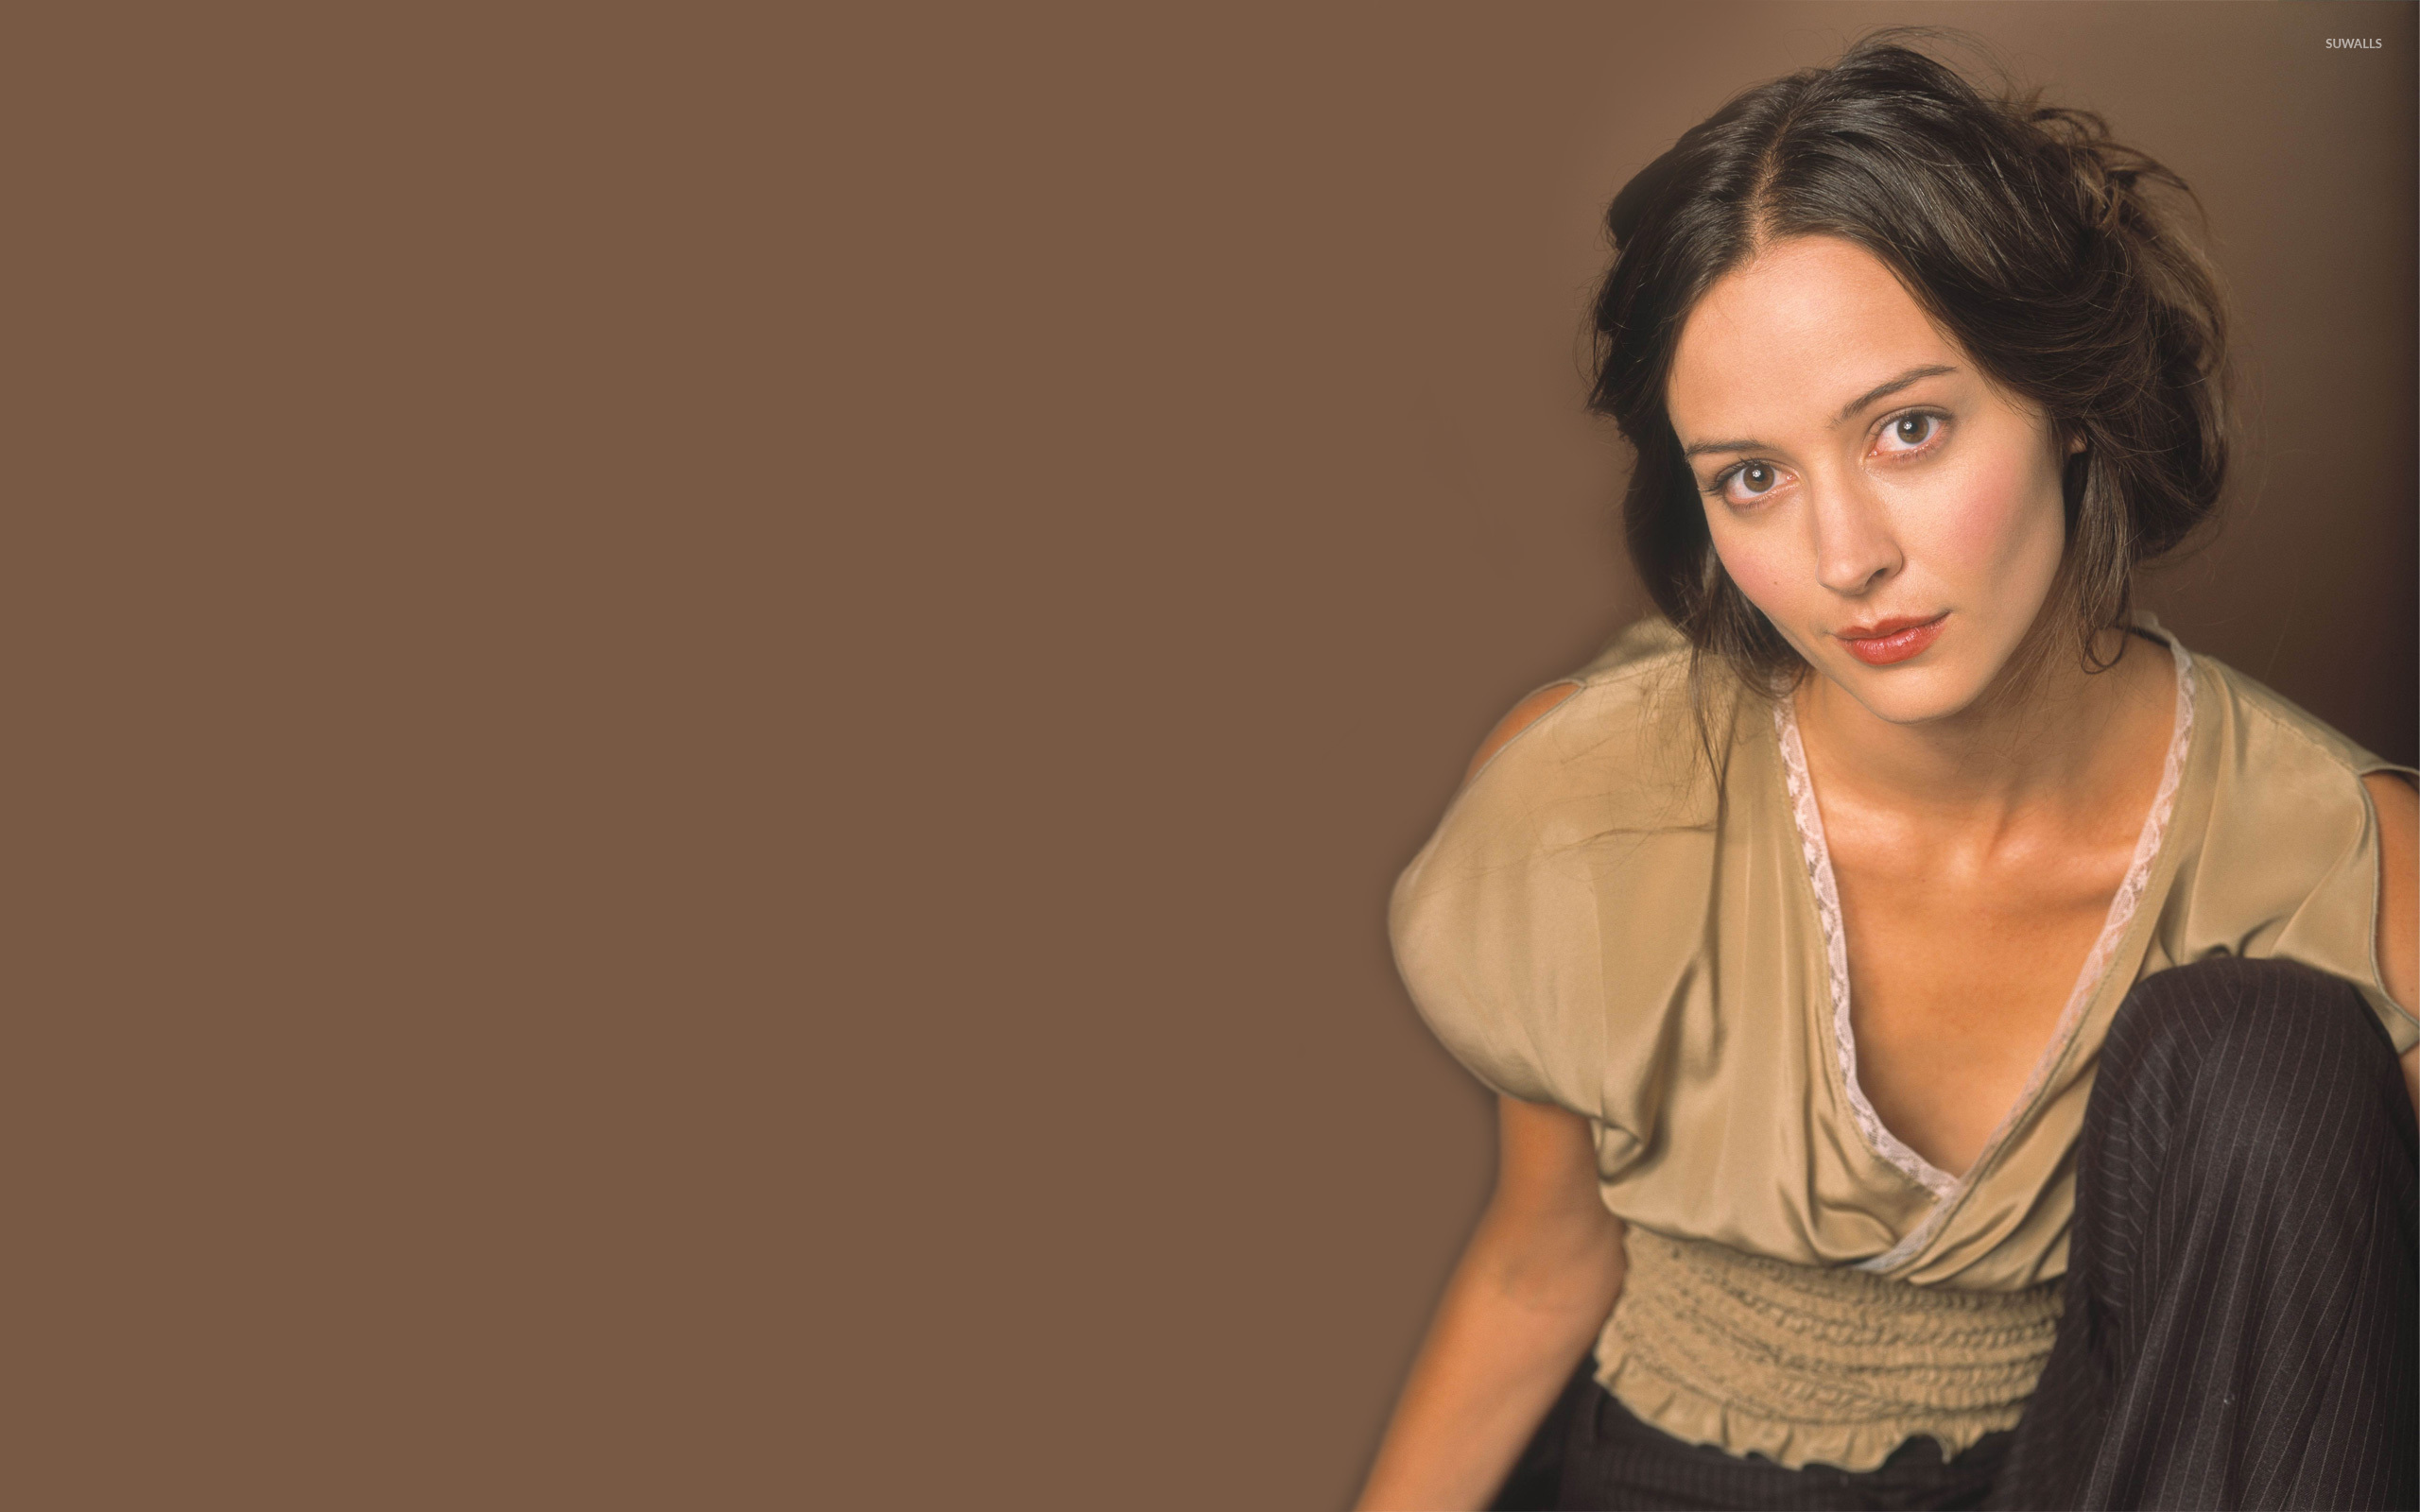 2560x1600 - Amy Acker Wallpapers 4